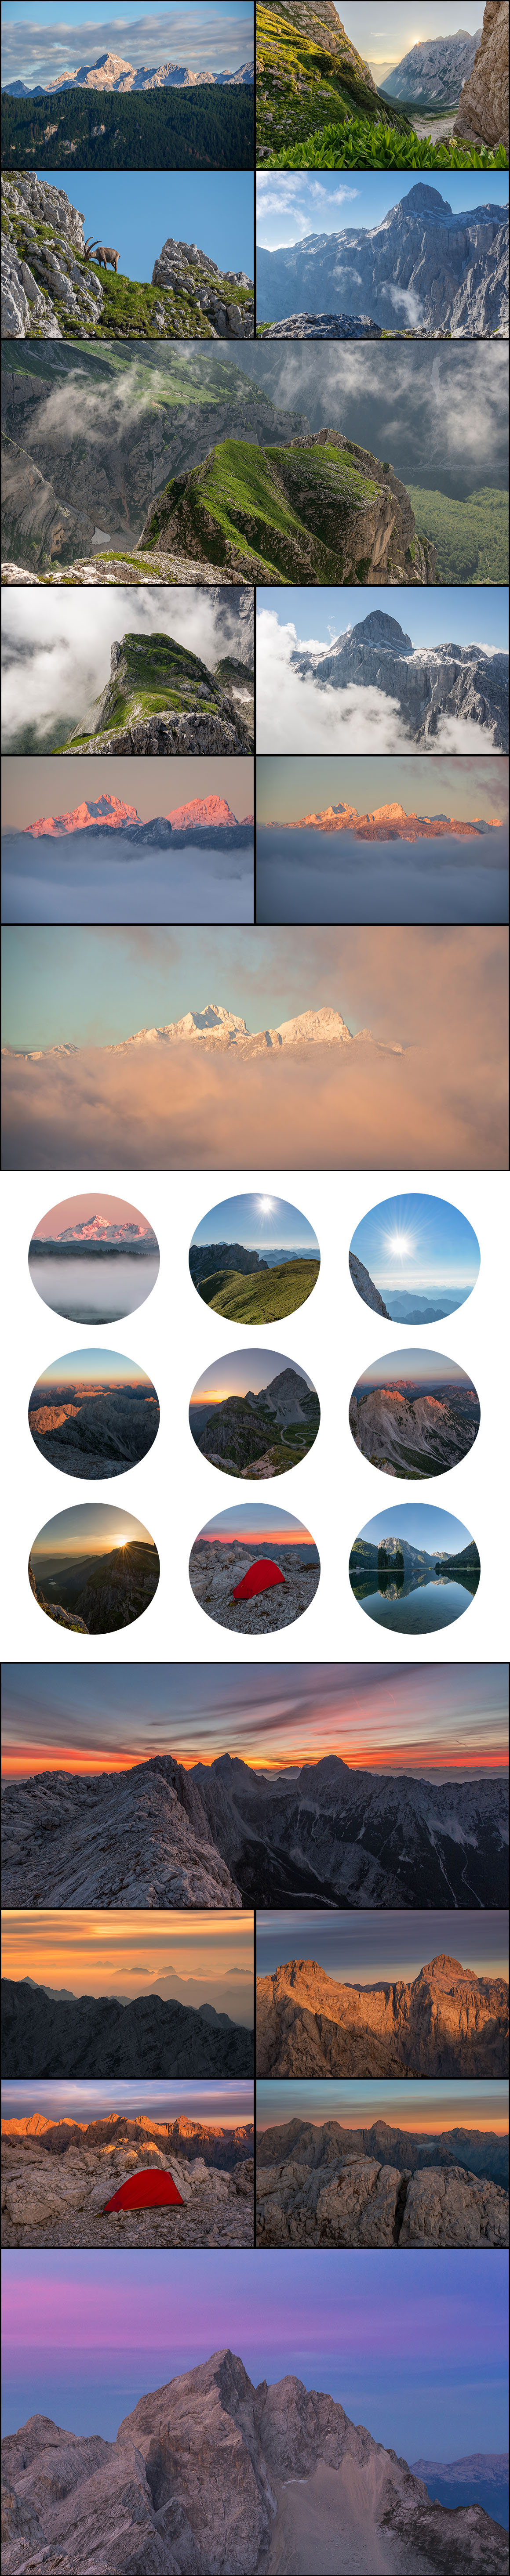 700+ Stock Photos from DreamyPixel. Ultimate Photo Bundle